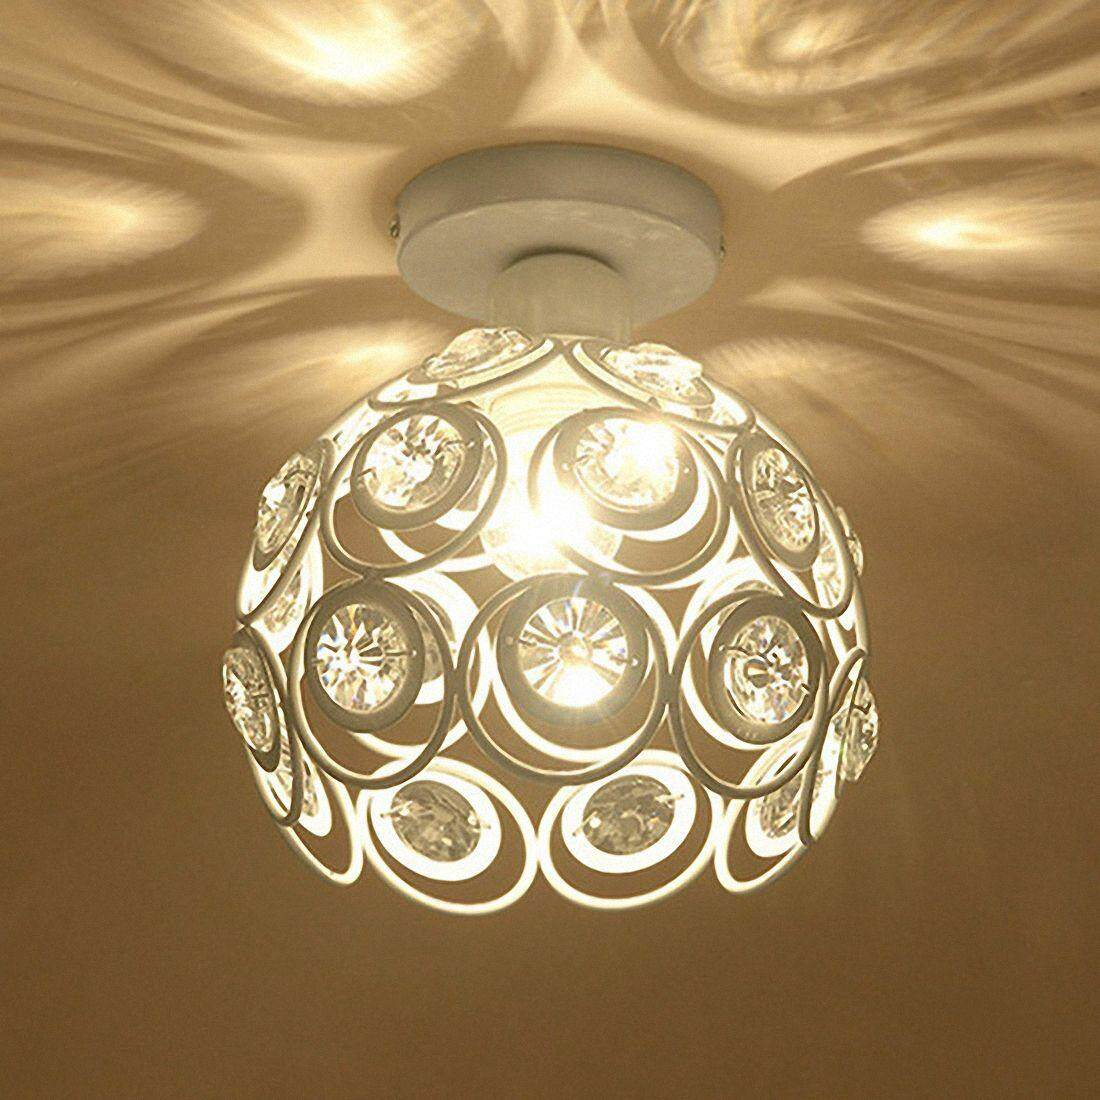 E27 Creative Crystal Minimalist Ceiling Light Simple Ceiling Lamp Bedroom Alley Simple European White Iron Lamp Crystal Lamp